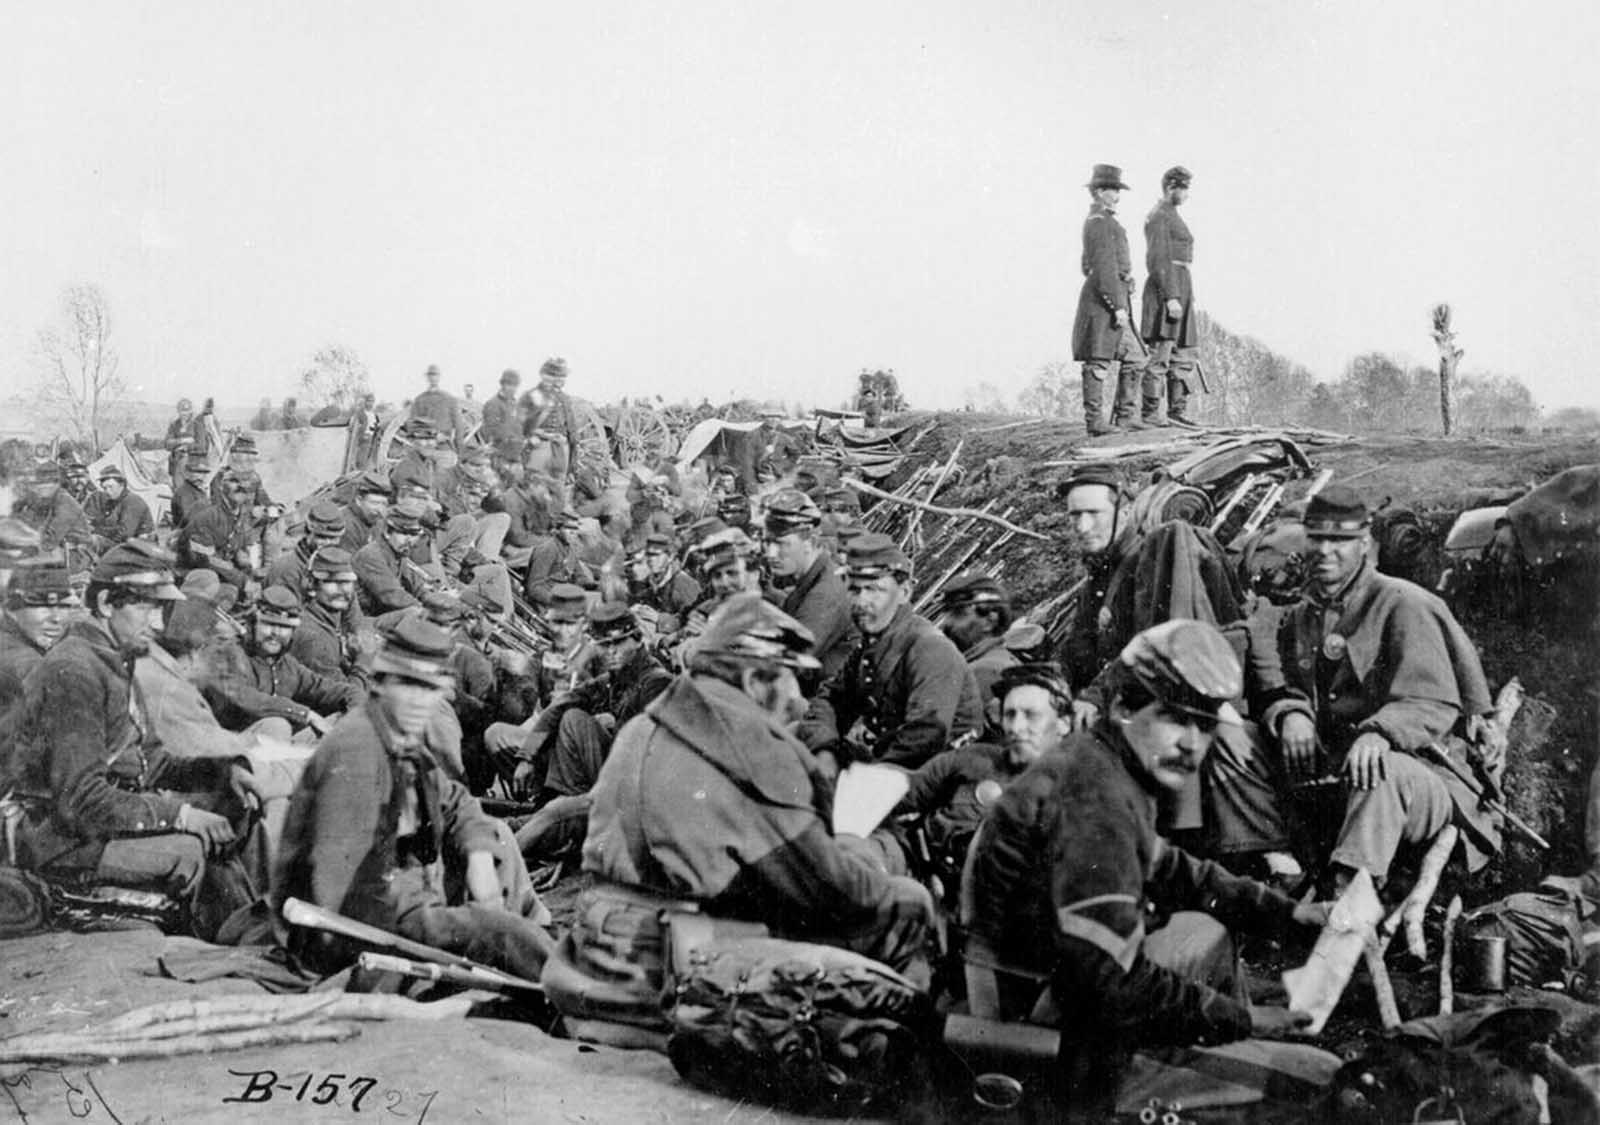 Soldiers of the VI Corps, Army of the Potomac, in trenches before storming Marye's Heights at the Second Battle of Fredericksburg during the Chancellorsville campaign, Virginia, May 1863. This photograph (Library of Congress #B-157) is sometimes labeled as taken at the 1864 Siege of Petersburg, Virginia.